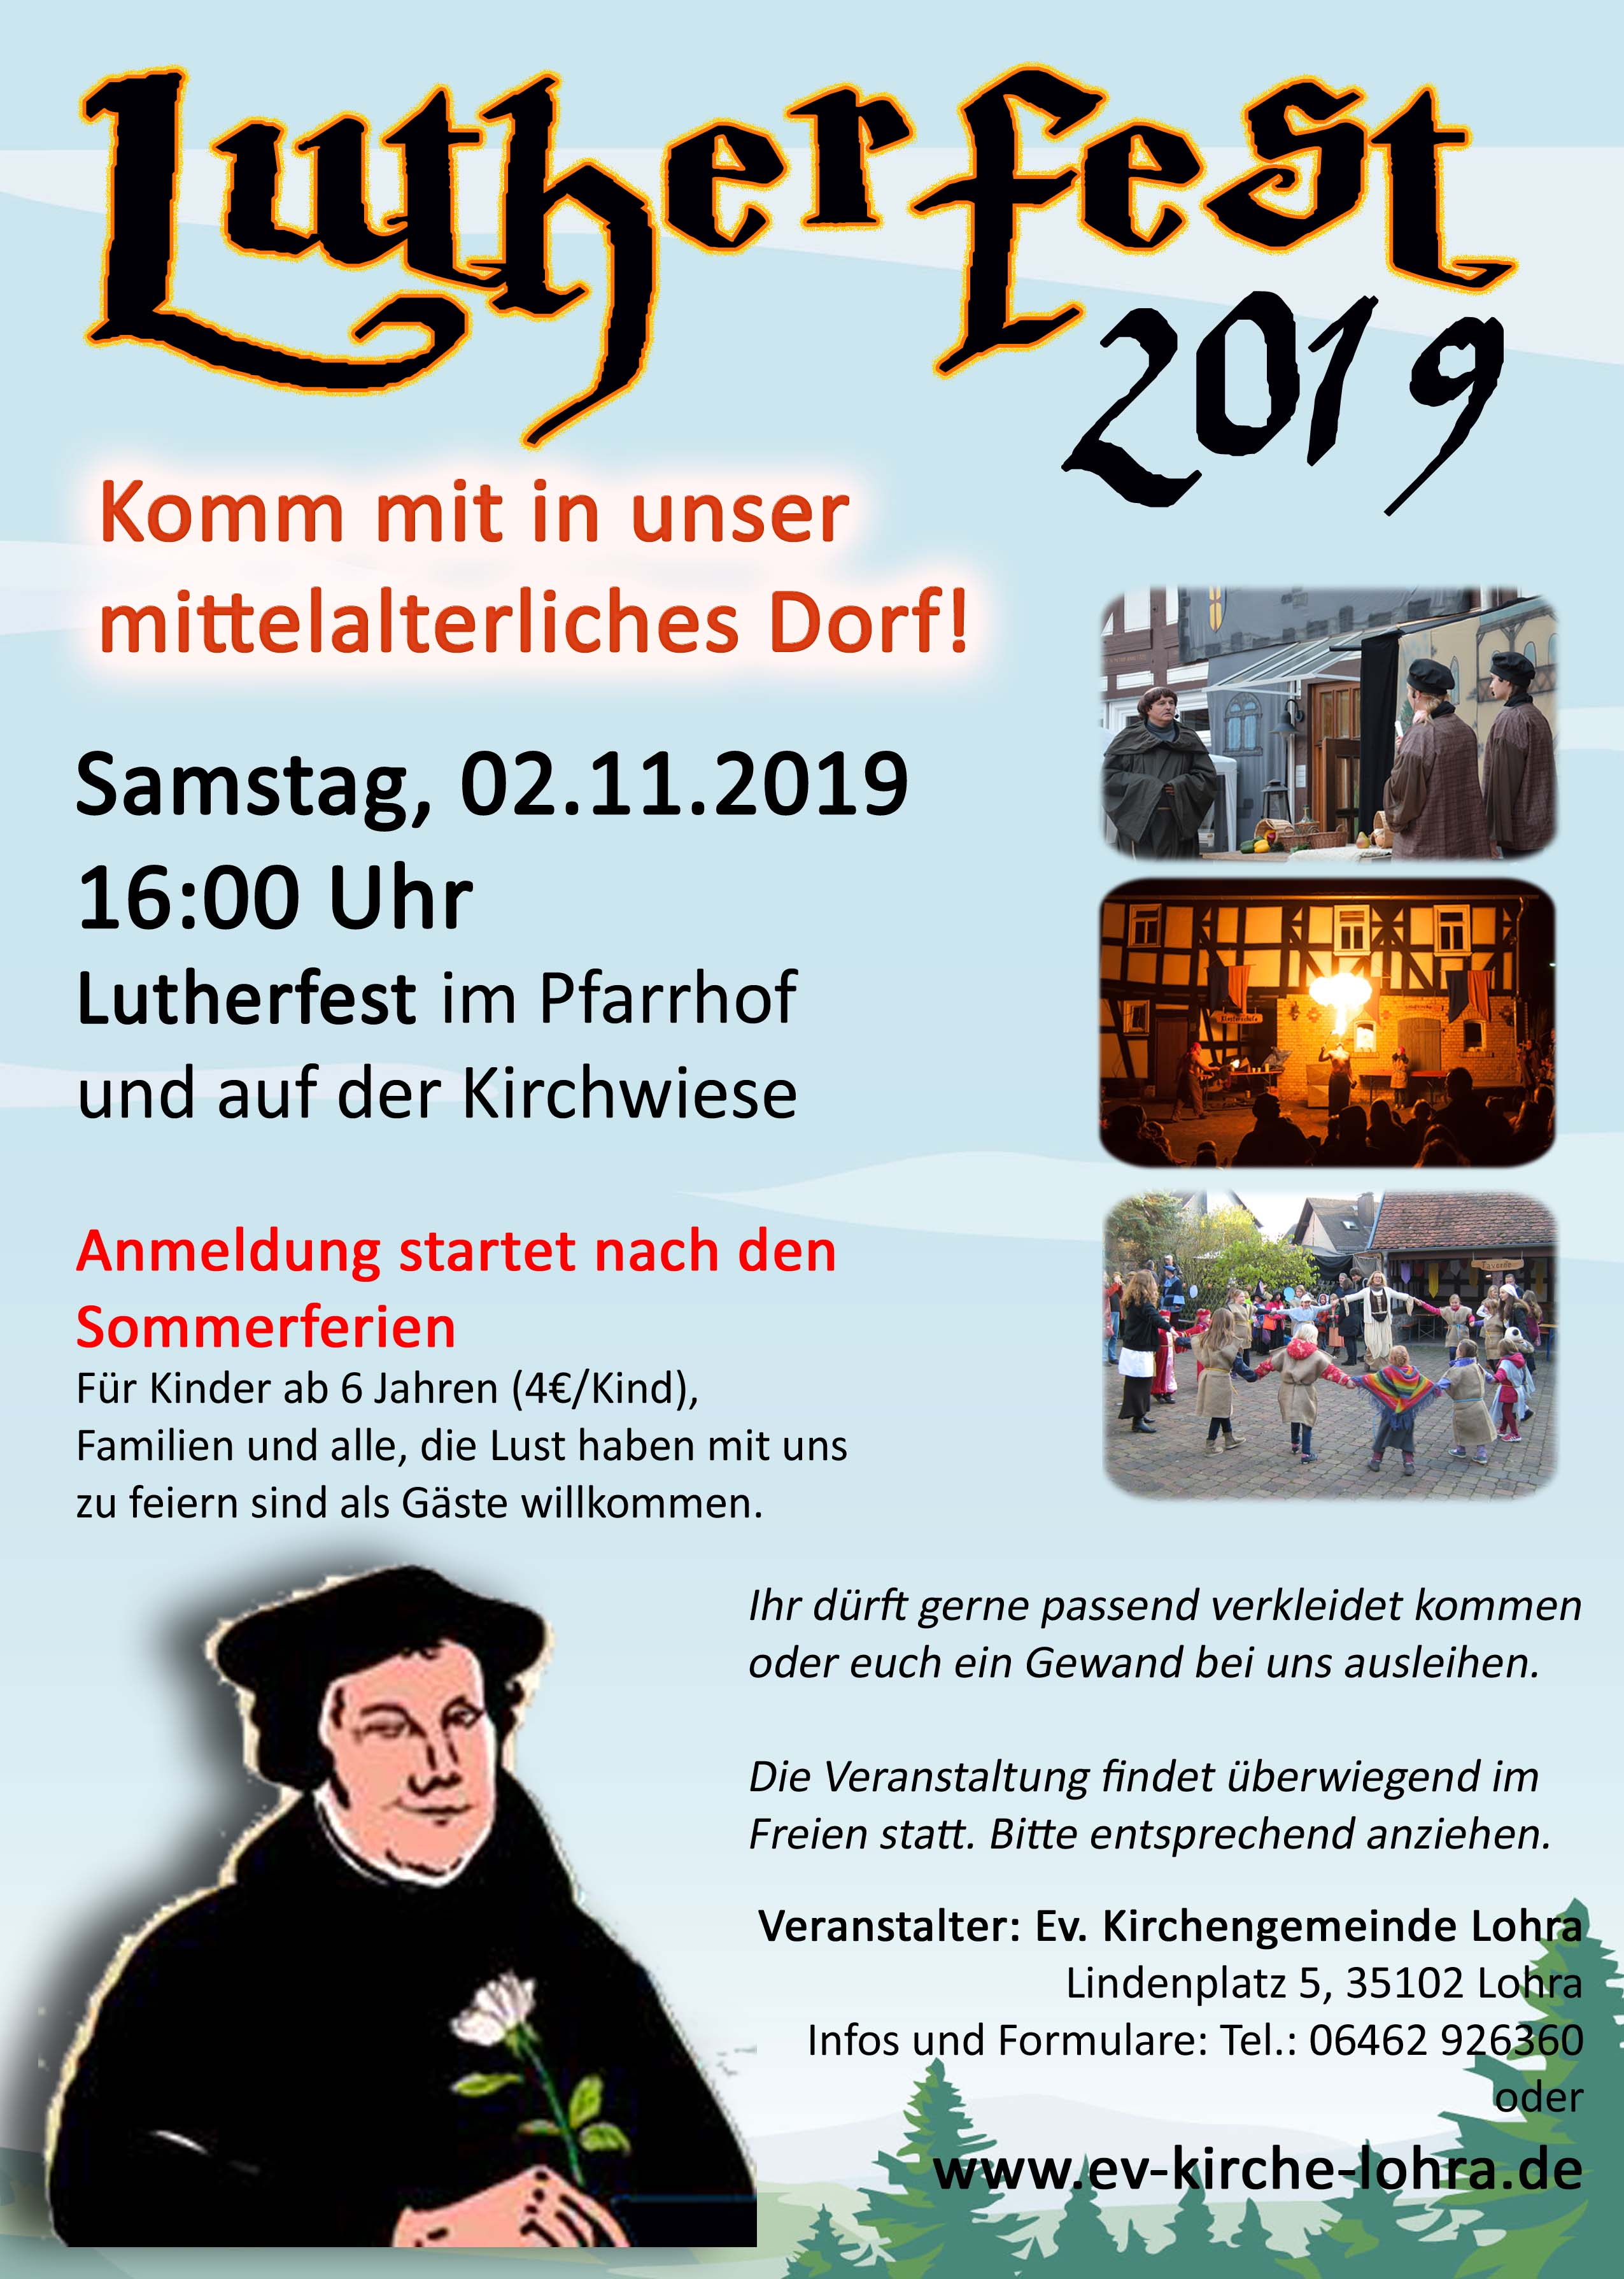 Lutherfest 2019